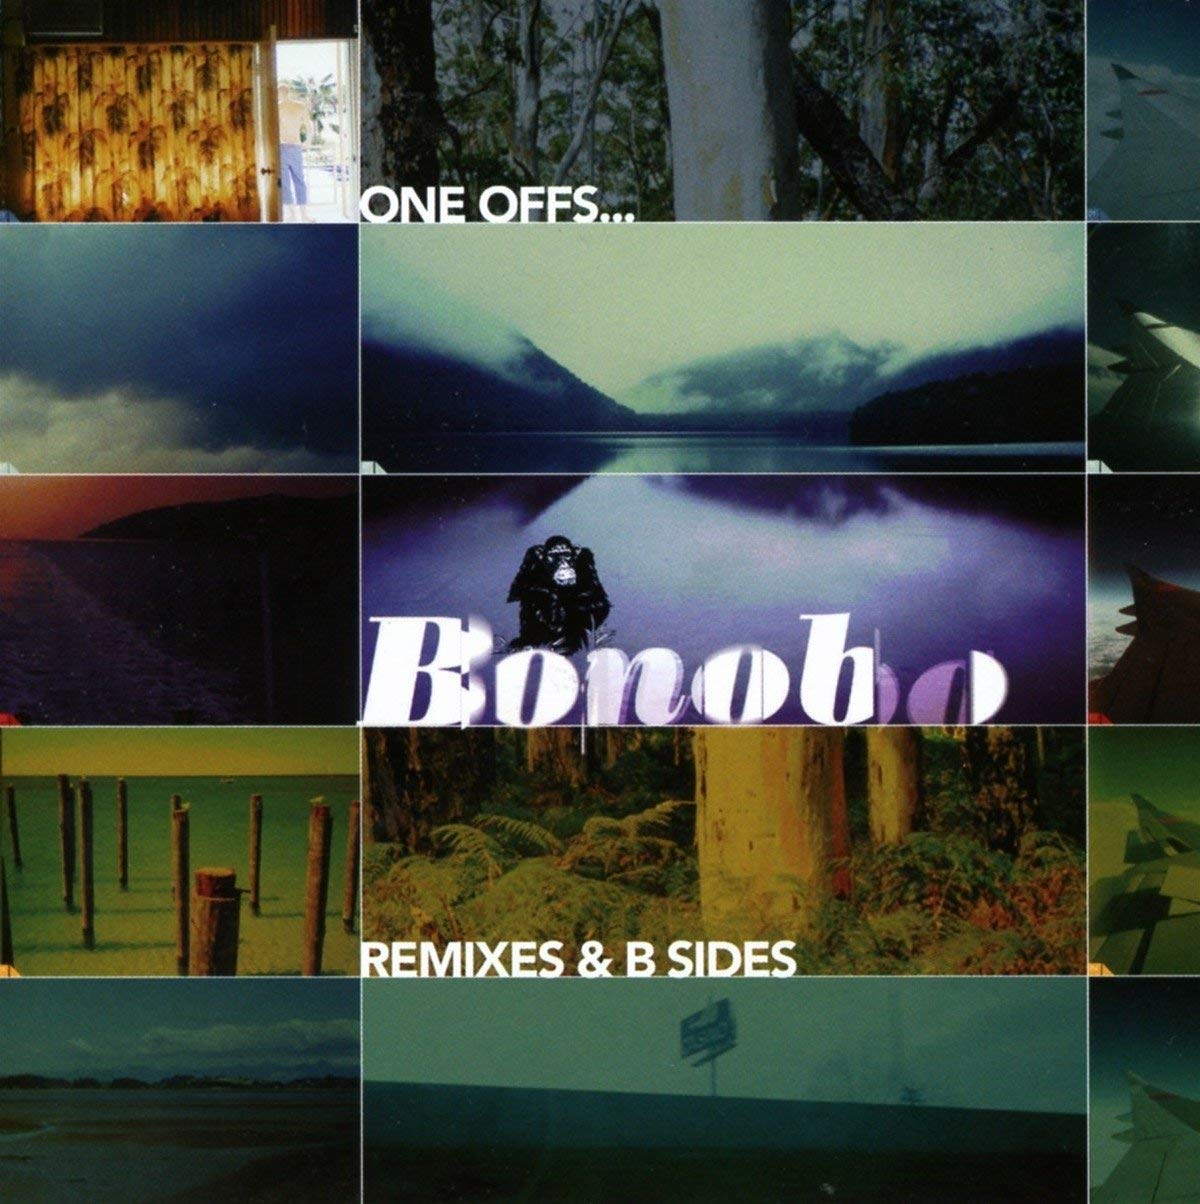 Image of One Offs,Remixes & B Sides / Bonobo